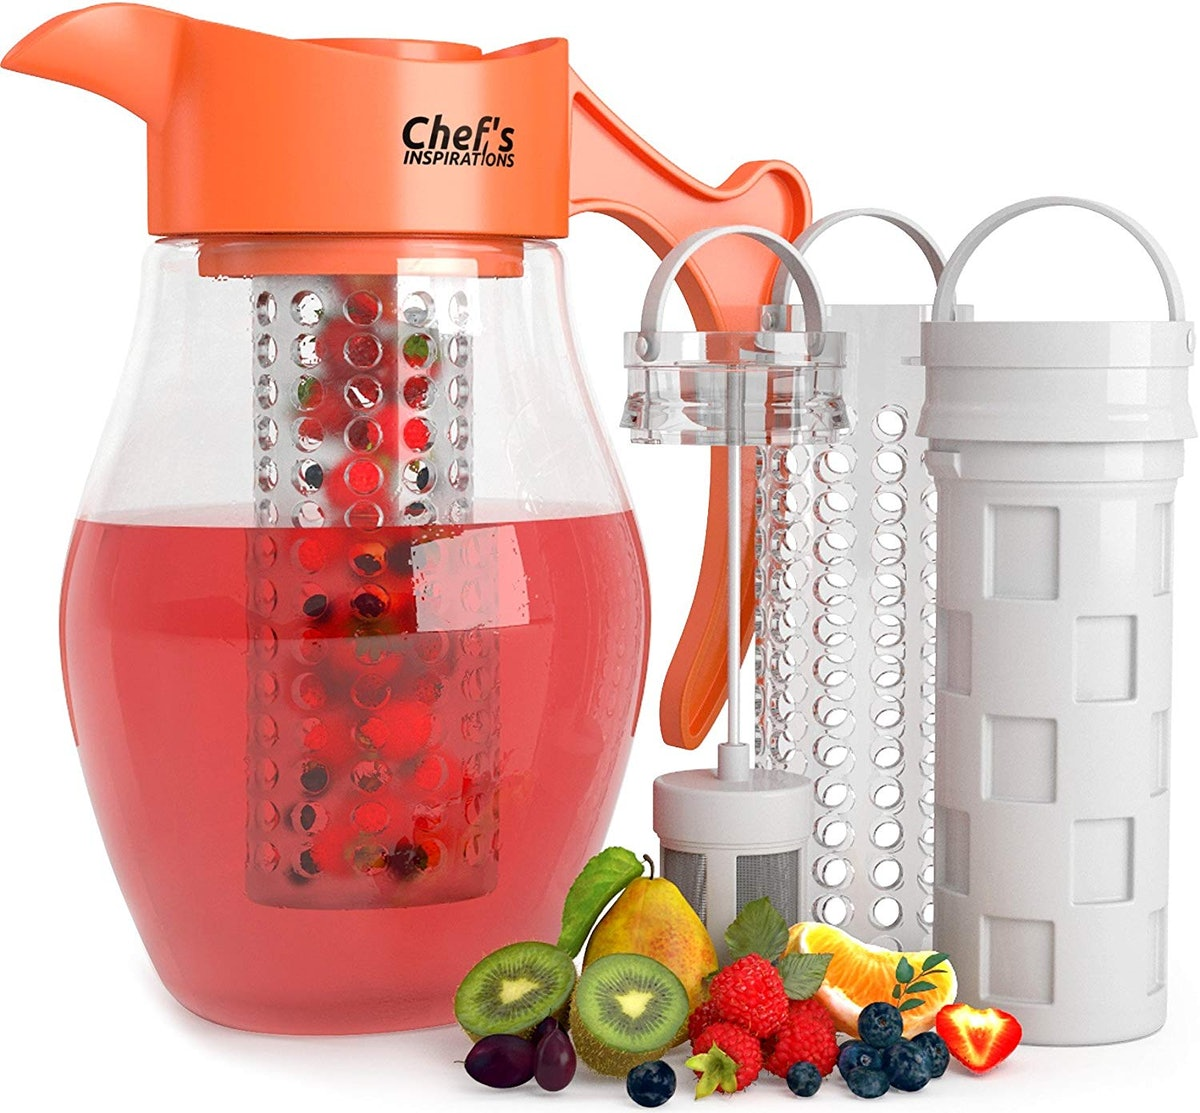 Chef's Inspirations Core Infusion Water Pitcher